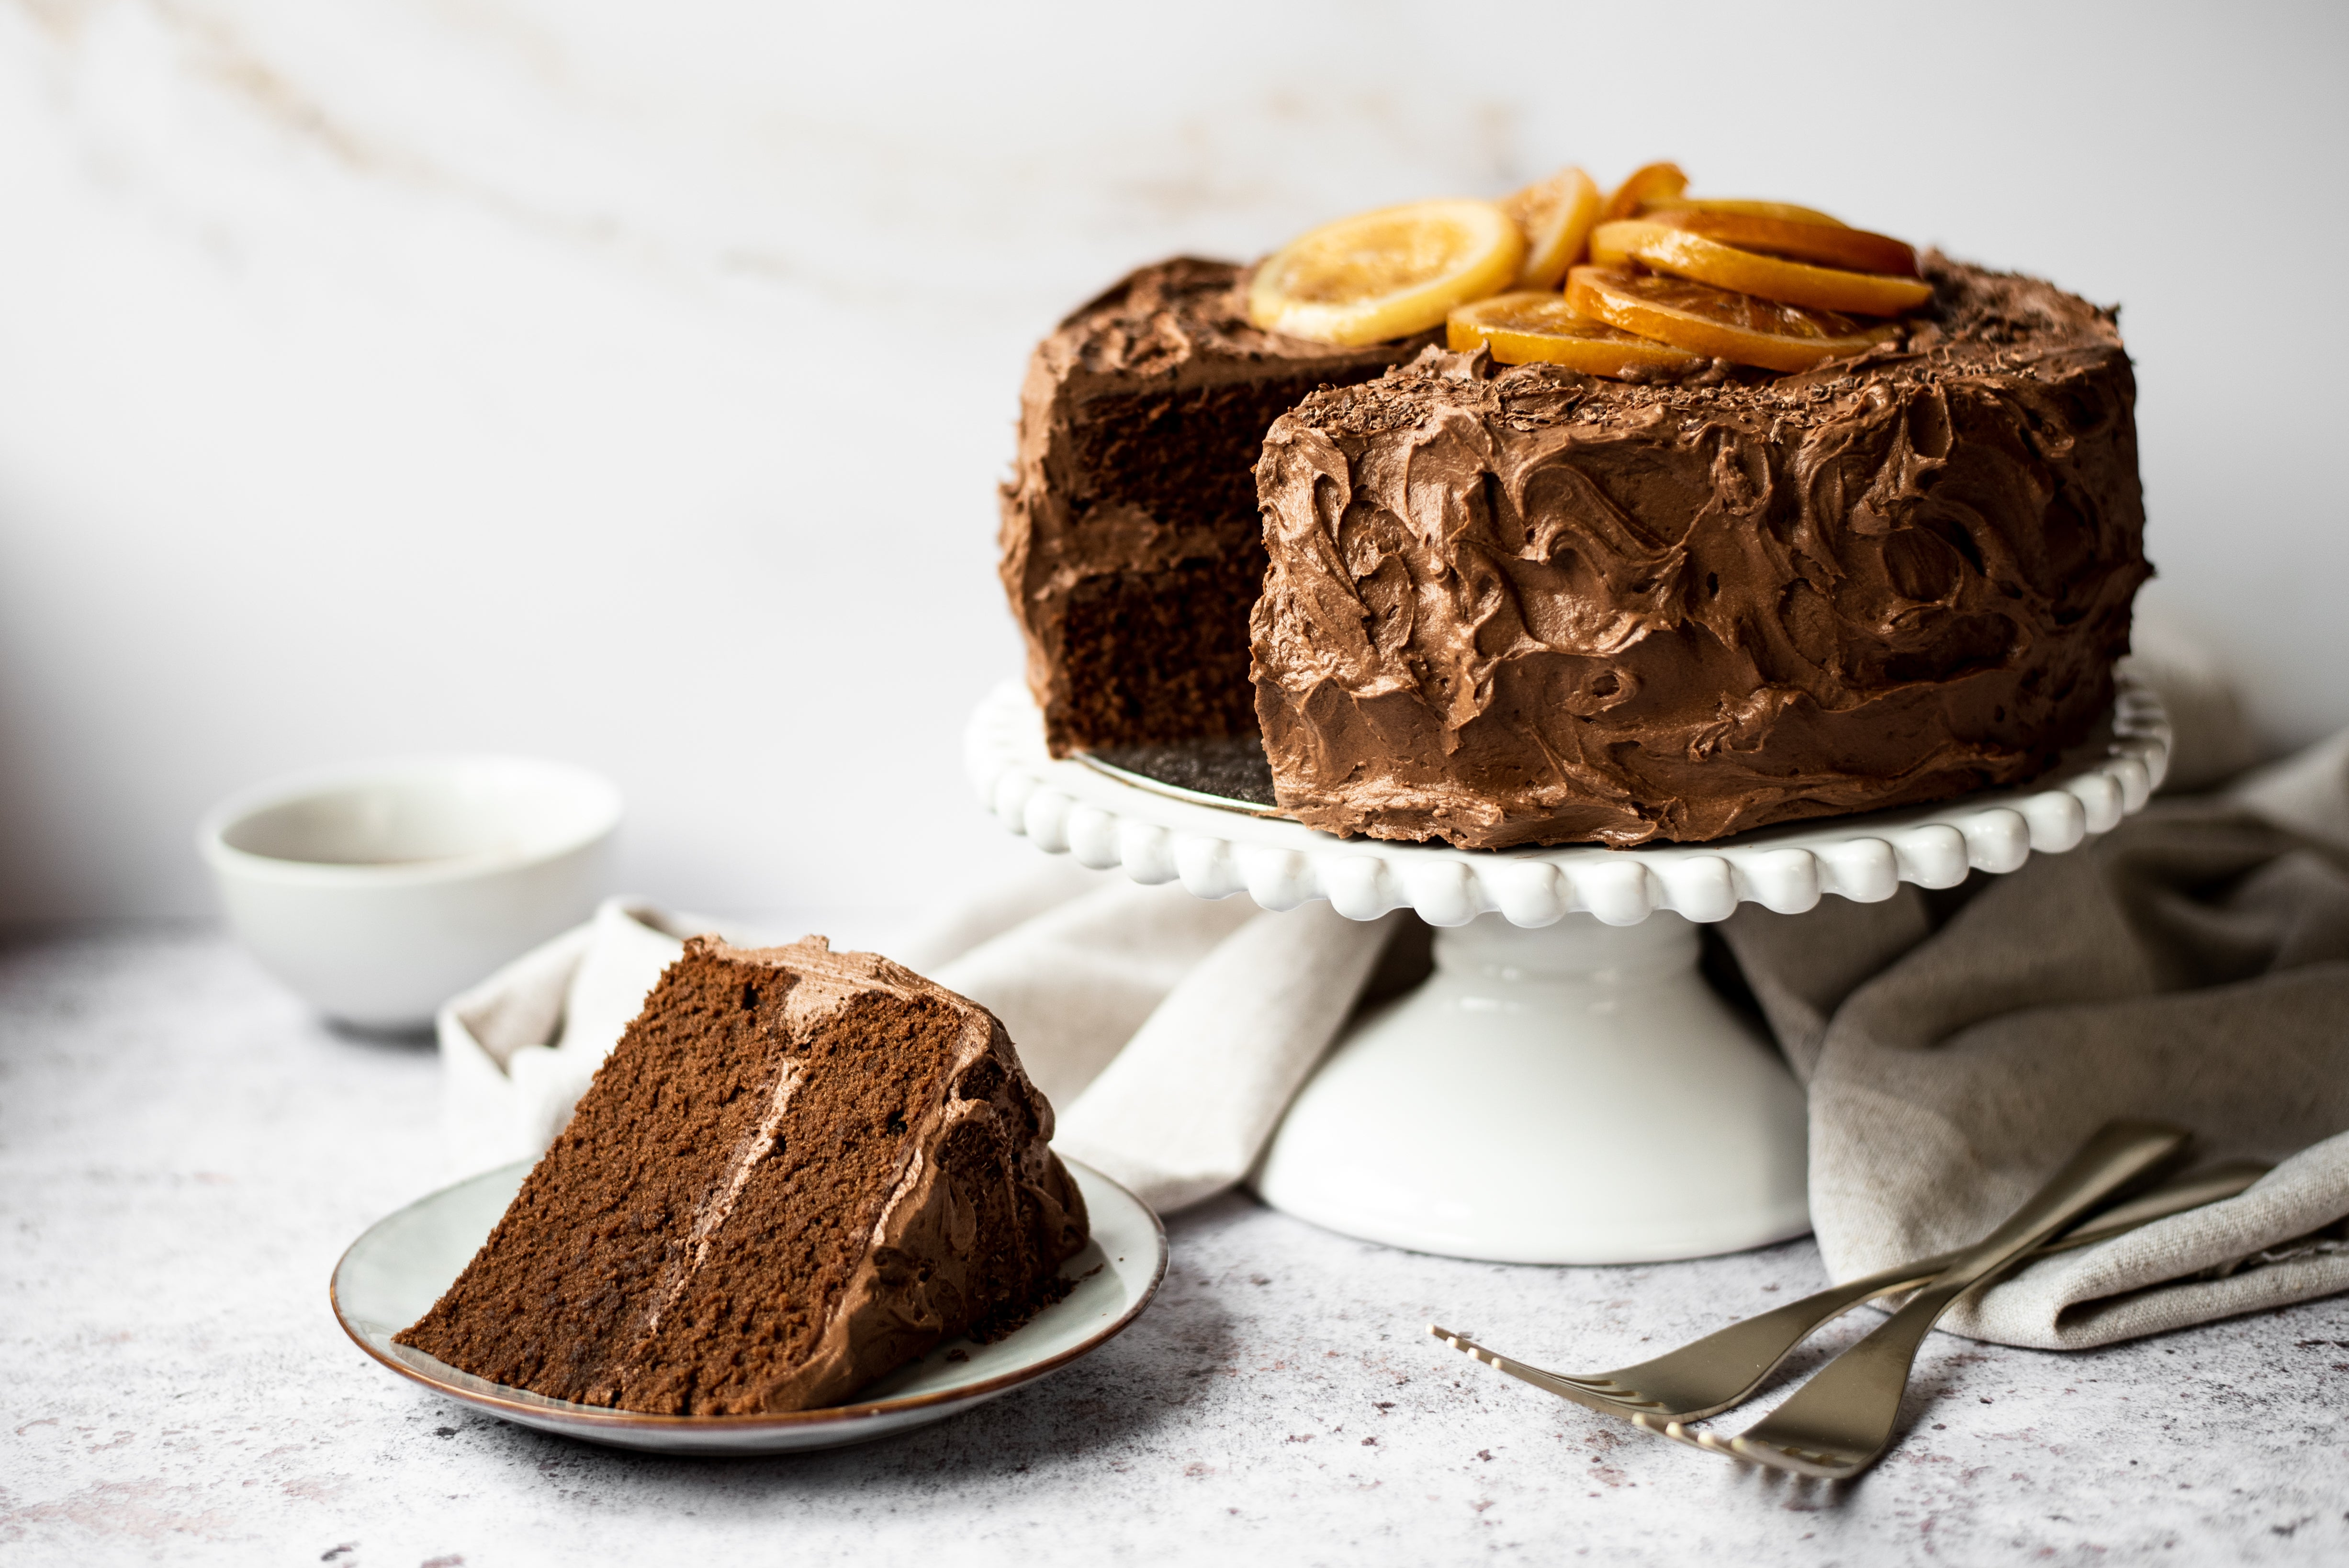 Chocolate cake with orange slices on top with a slice on a plate